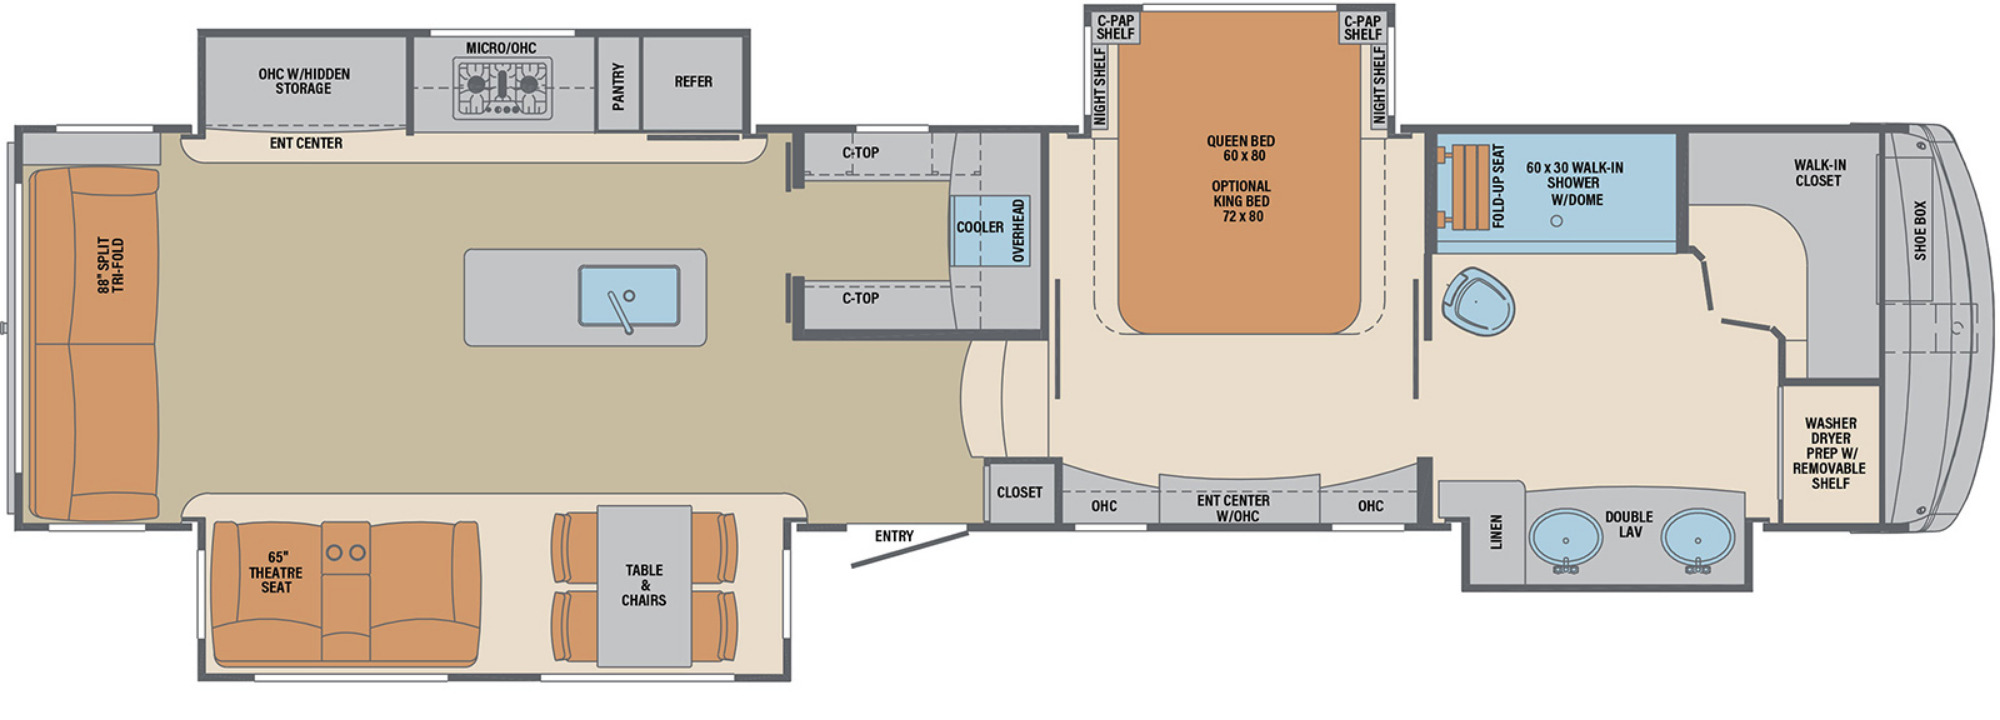 View Floor Plan for 2021 FOREST RIVER COLUMBUS 382FB